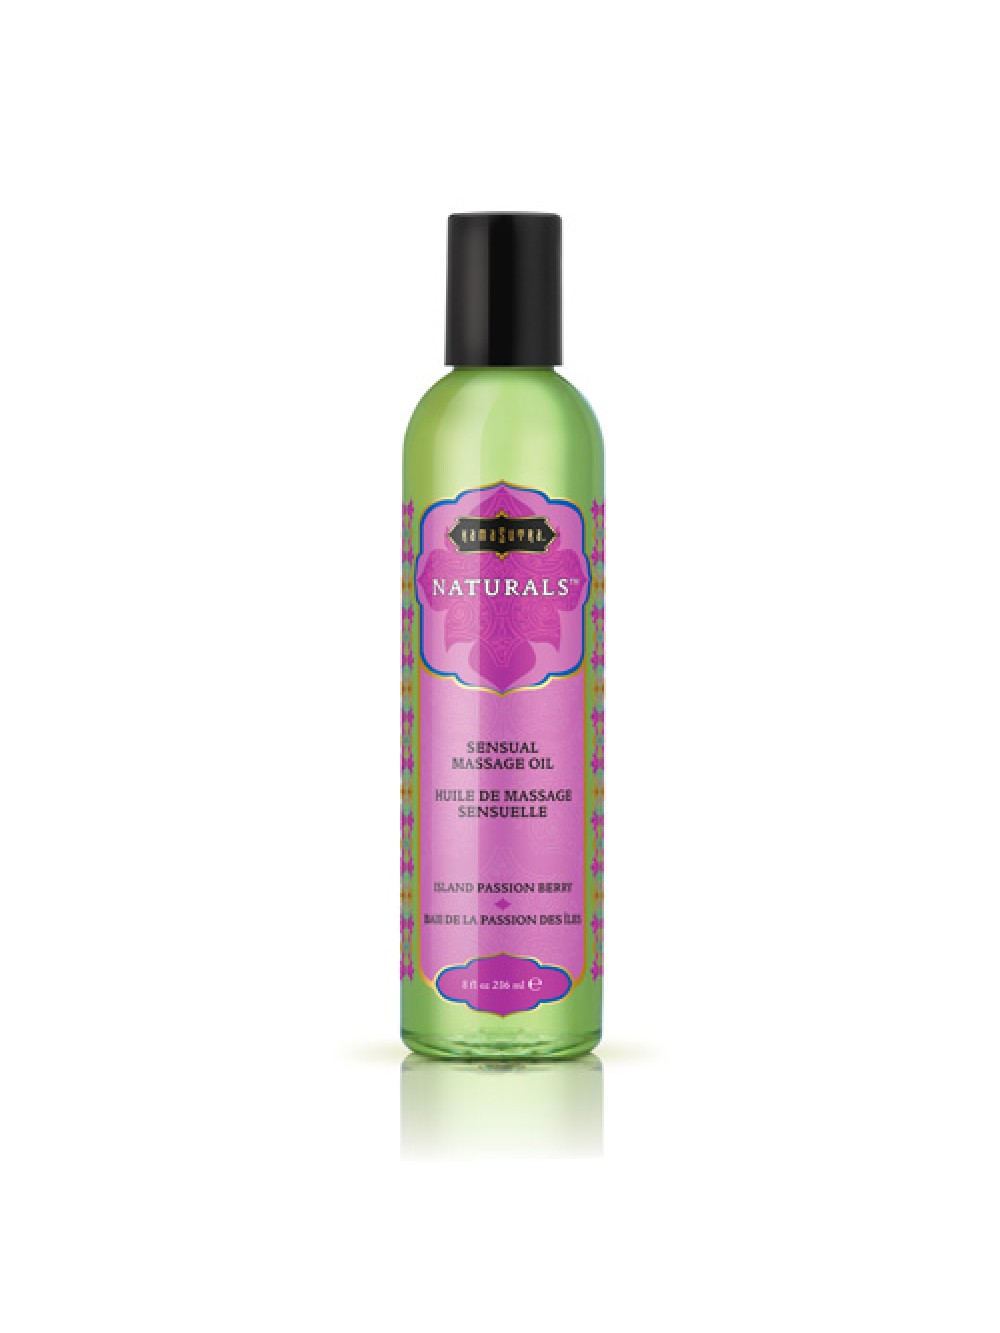 Kama Sutra Naturals Massage Oil Island Passion Berry 739122102452